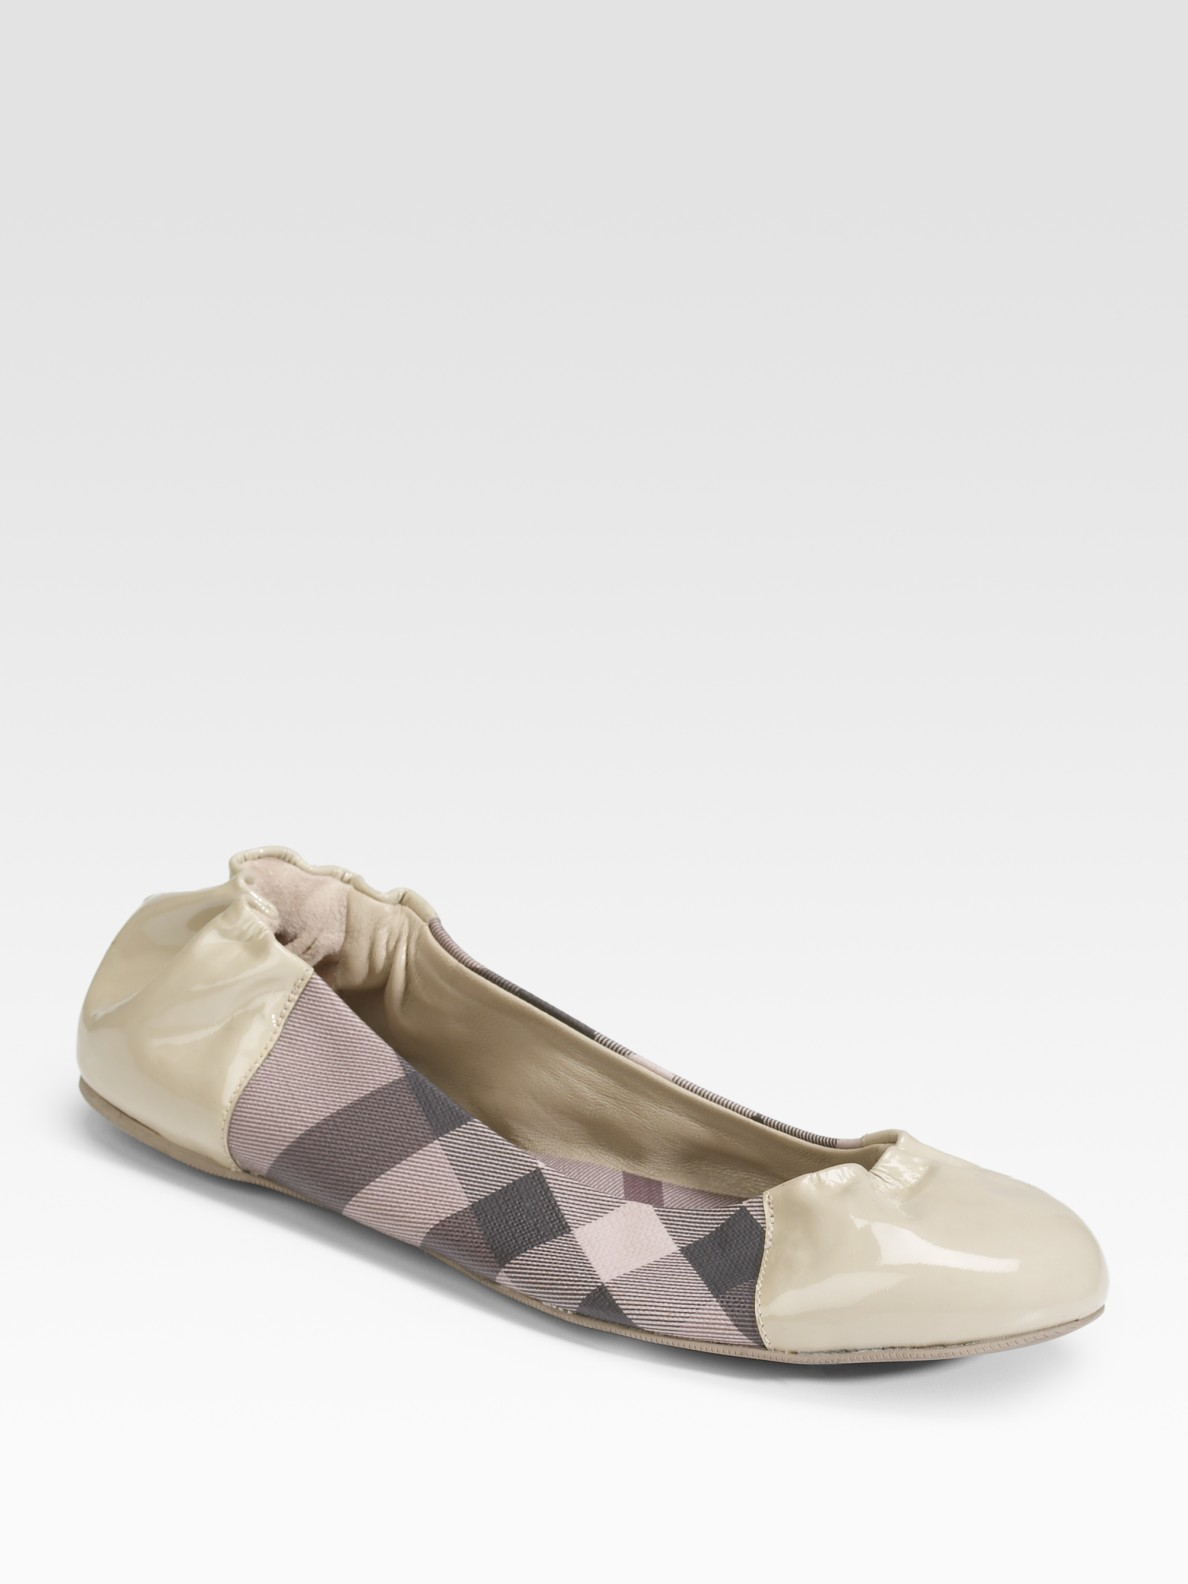 burberry coated canvas patent leather ballet flats in